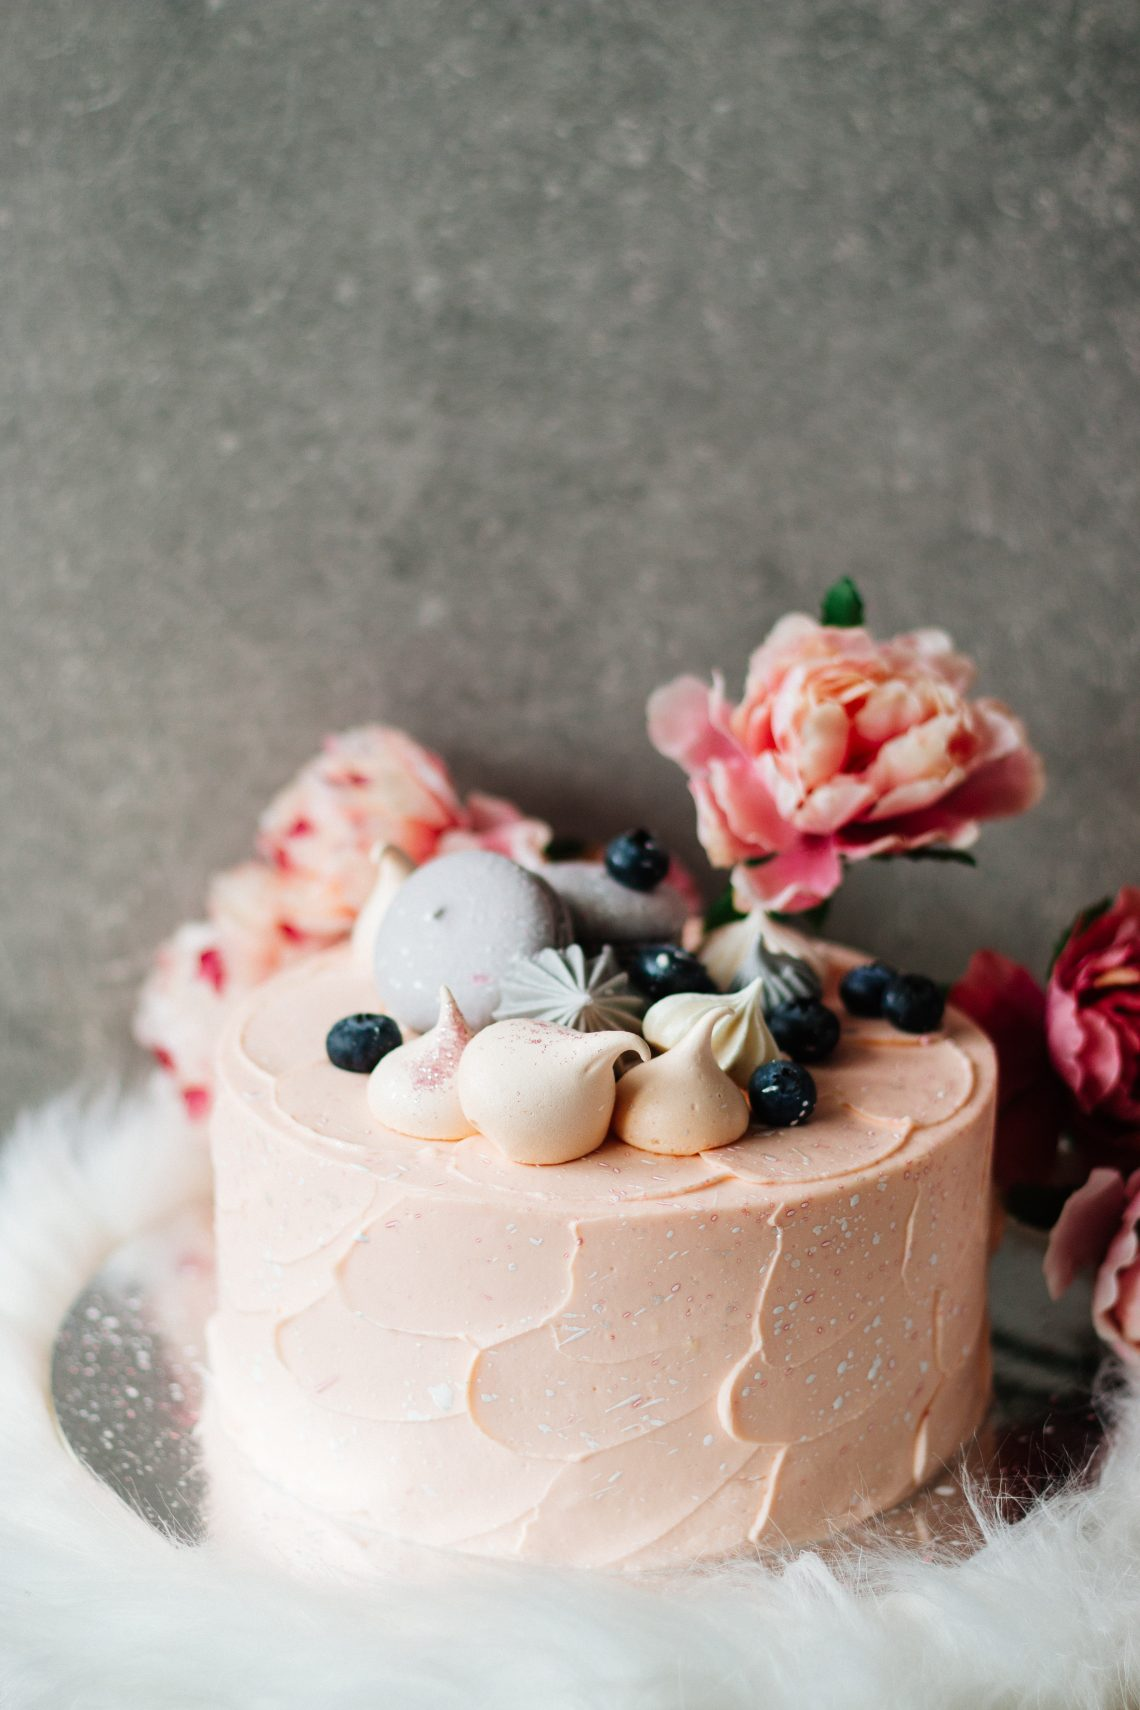 How to Store Fondant Cake